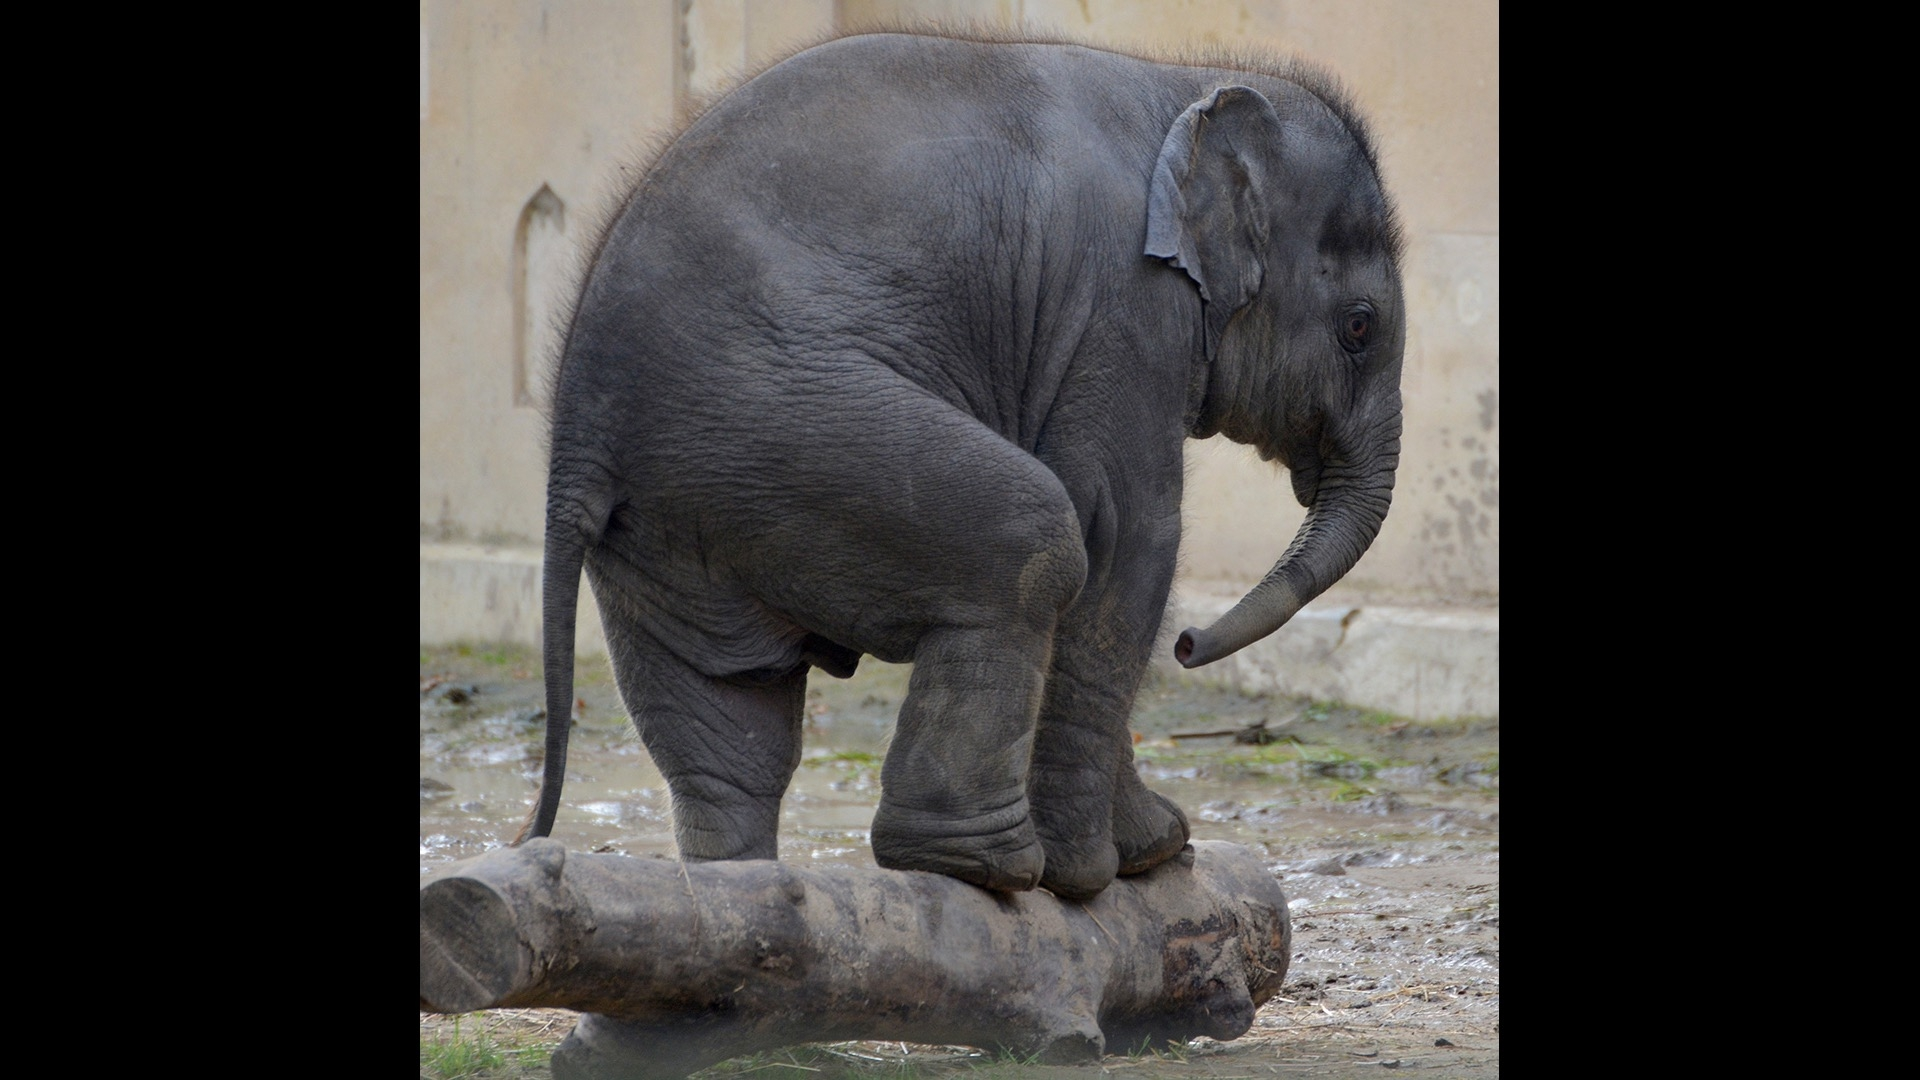 elephant trying to stand on log